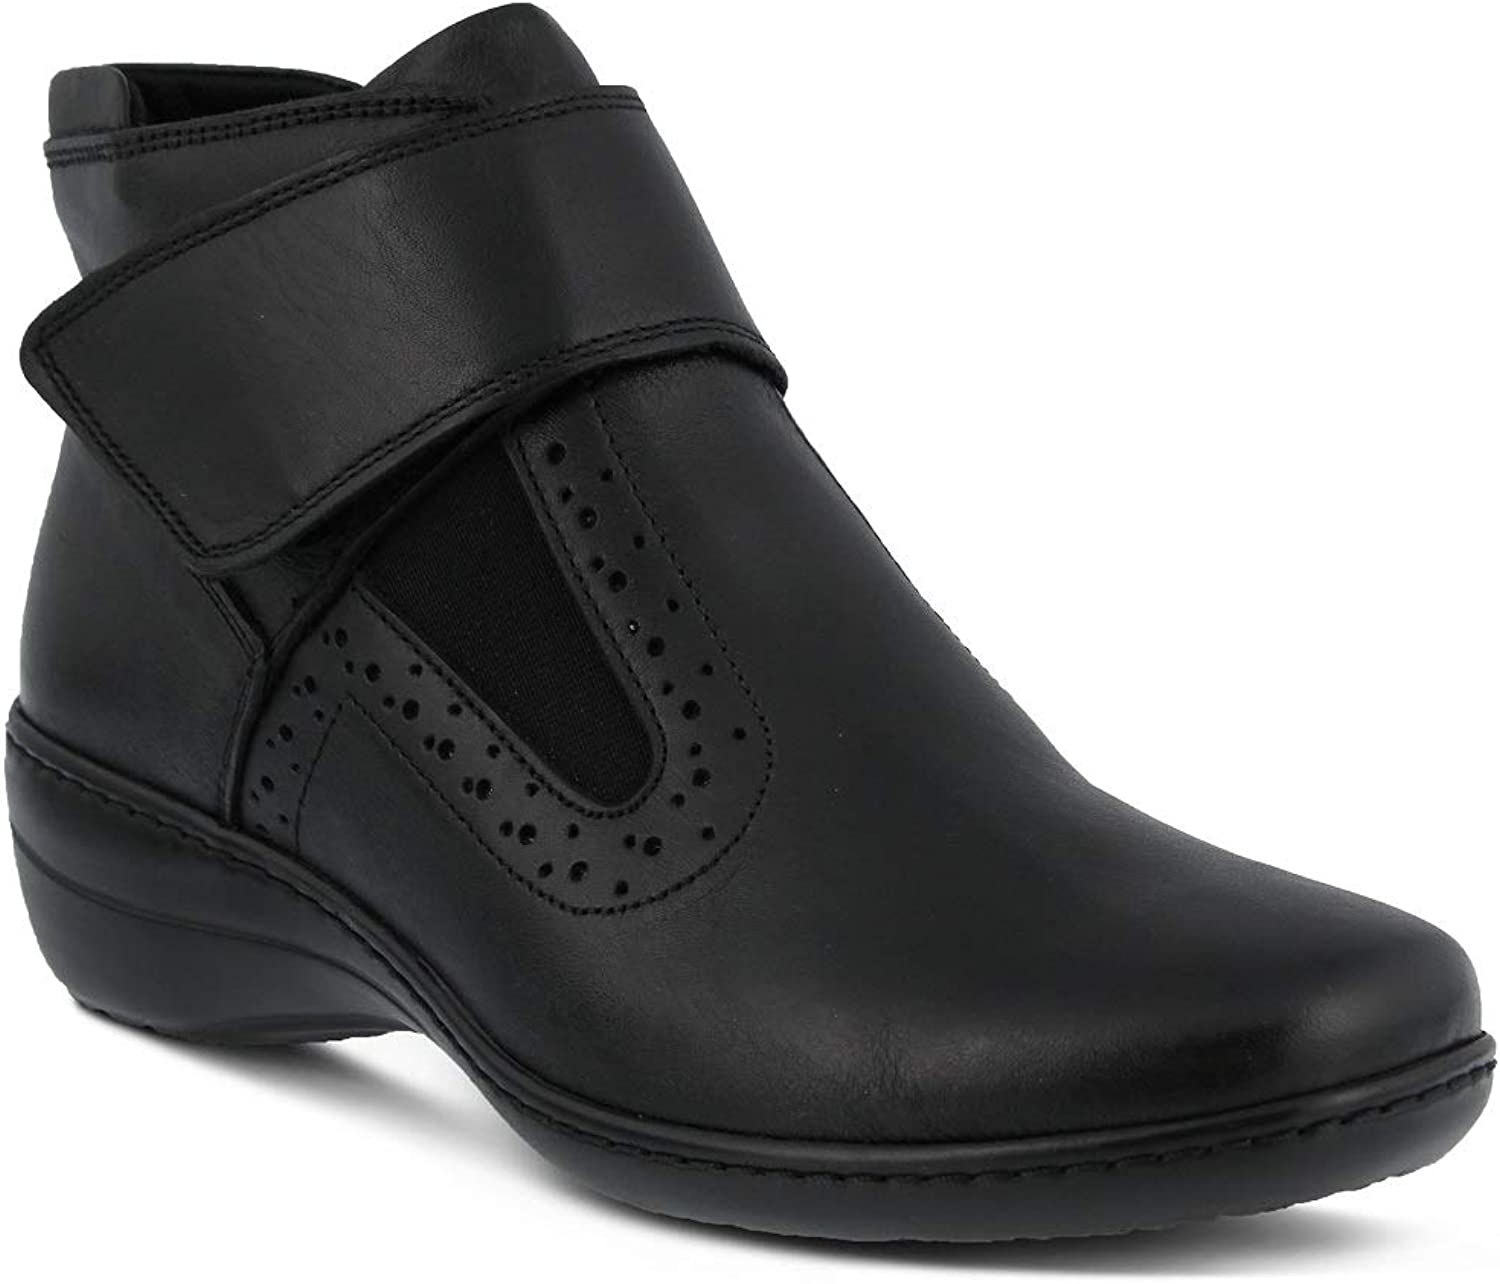 Spring Step Women's Katri Bootie   color Black   Leather Bootie